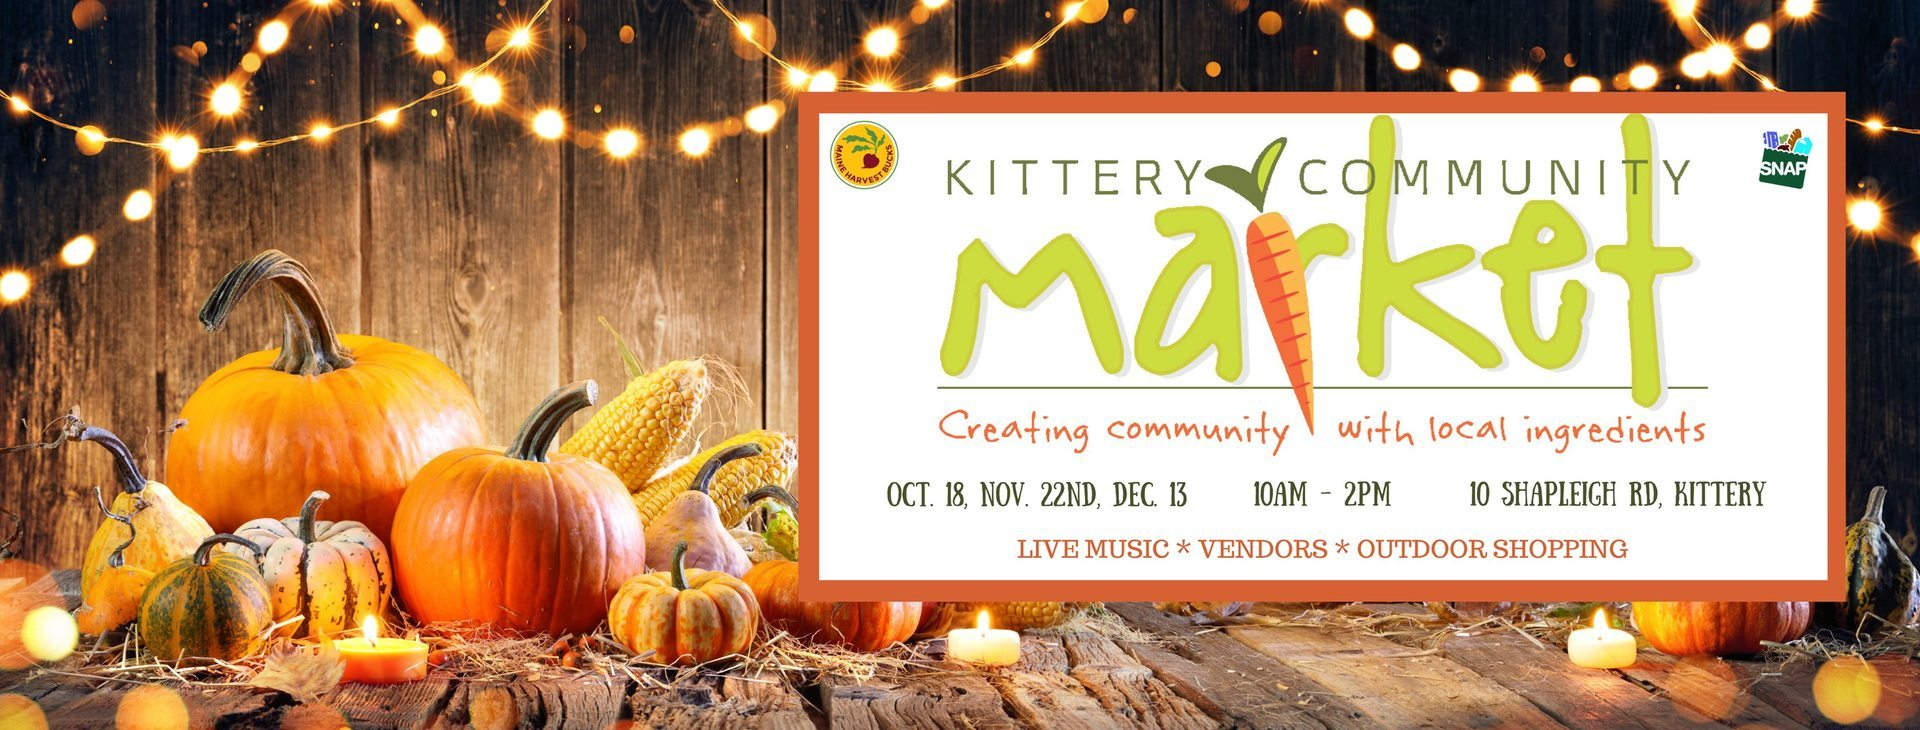 This Sunday is our special Fall Event from 10am - 2pm. 🥕💚 Located in Post Office Square, 10 Shapleigh Road, Kittery, Maine.